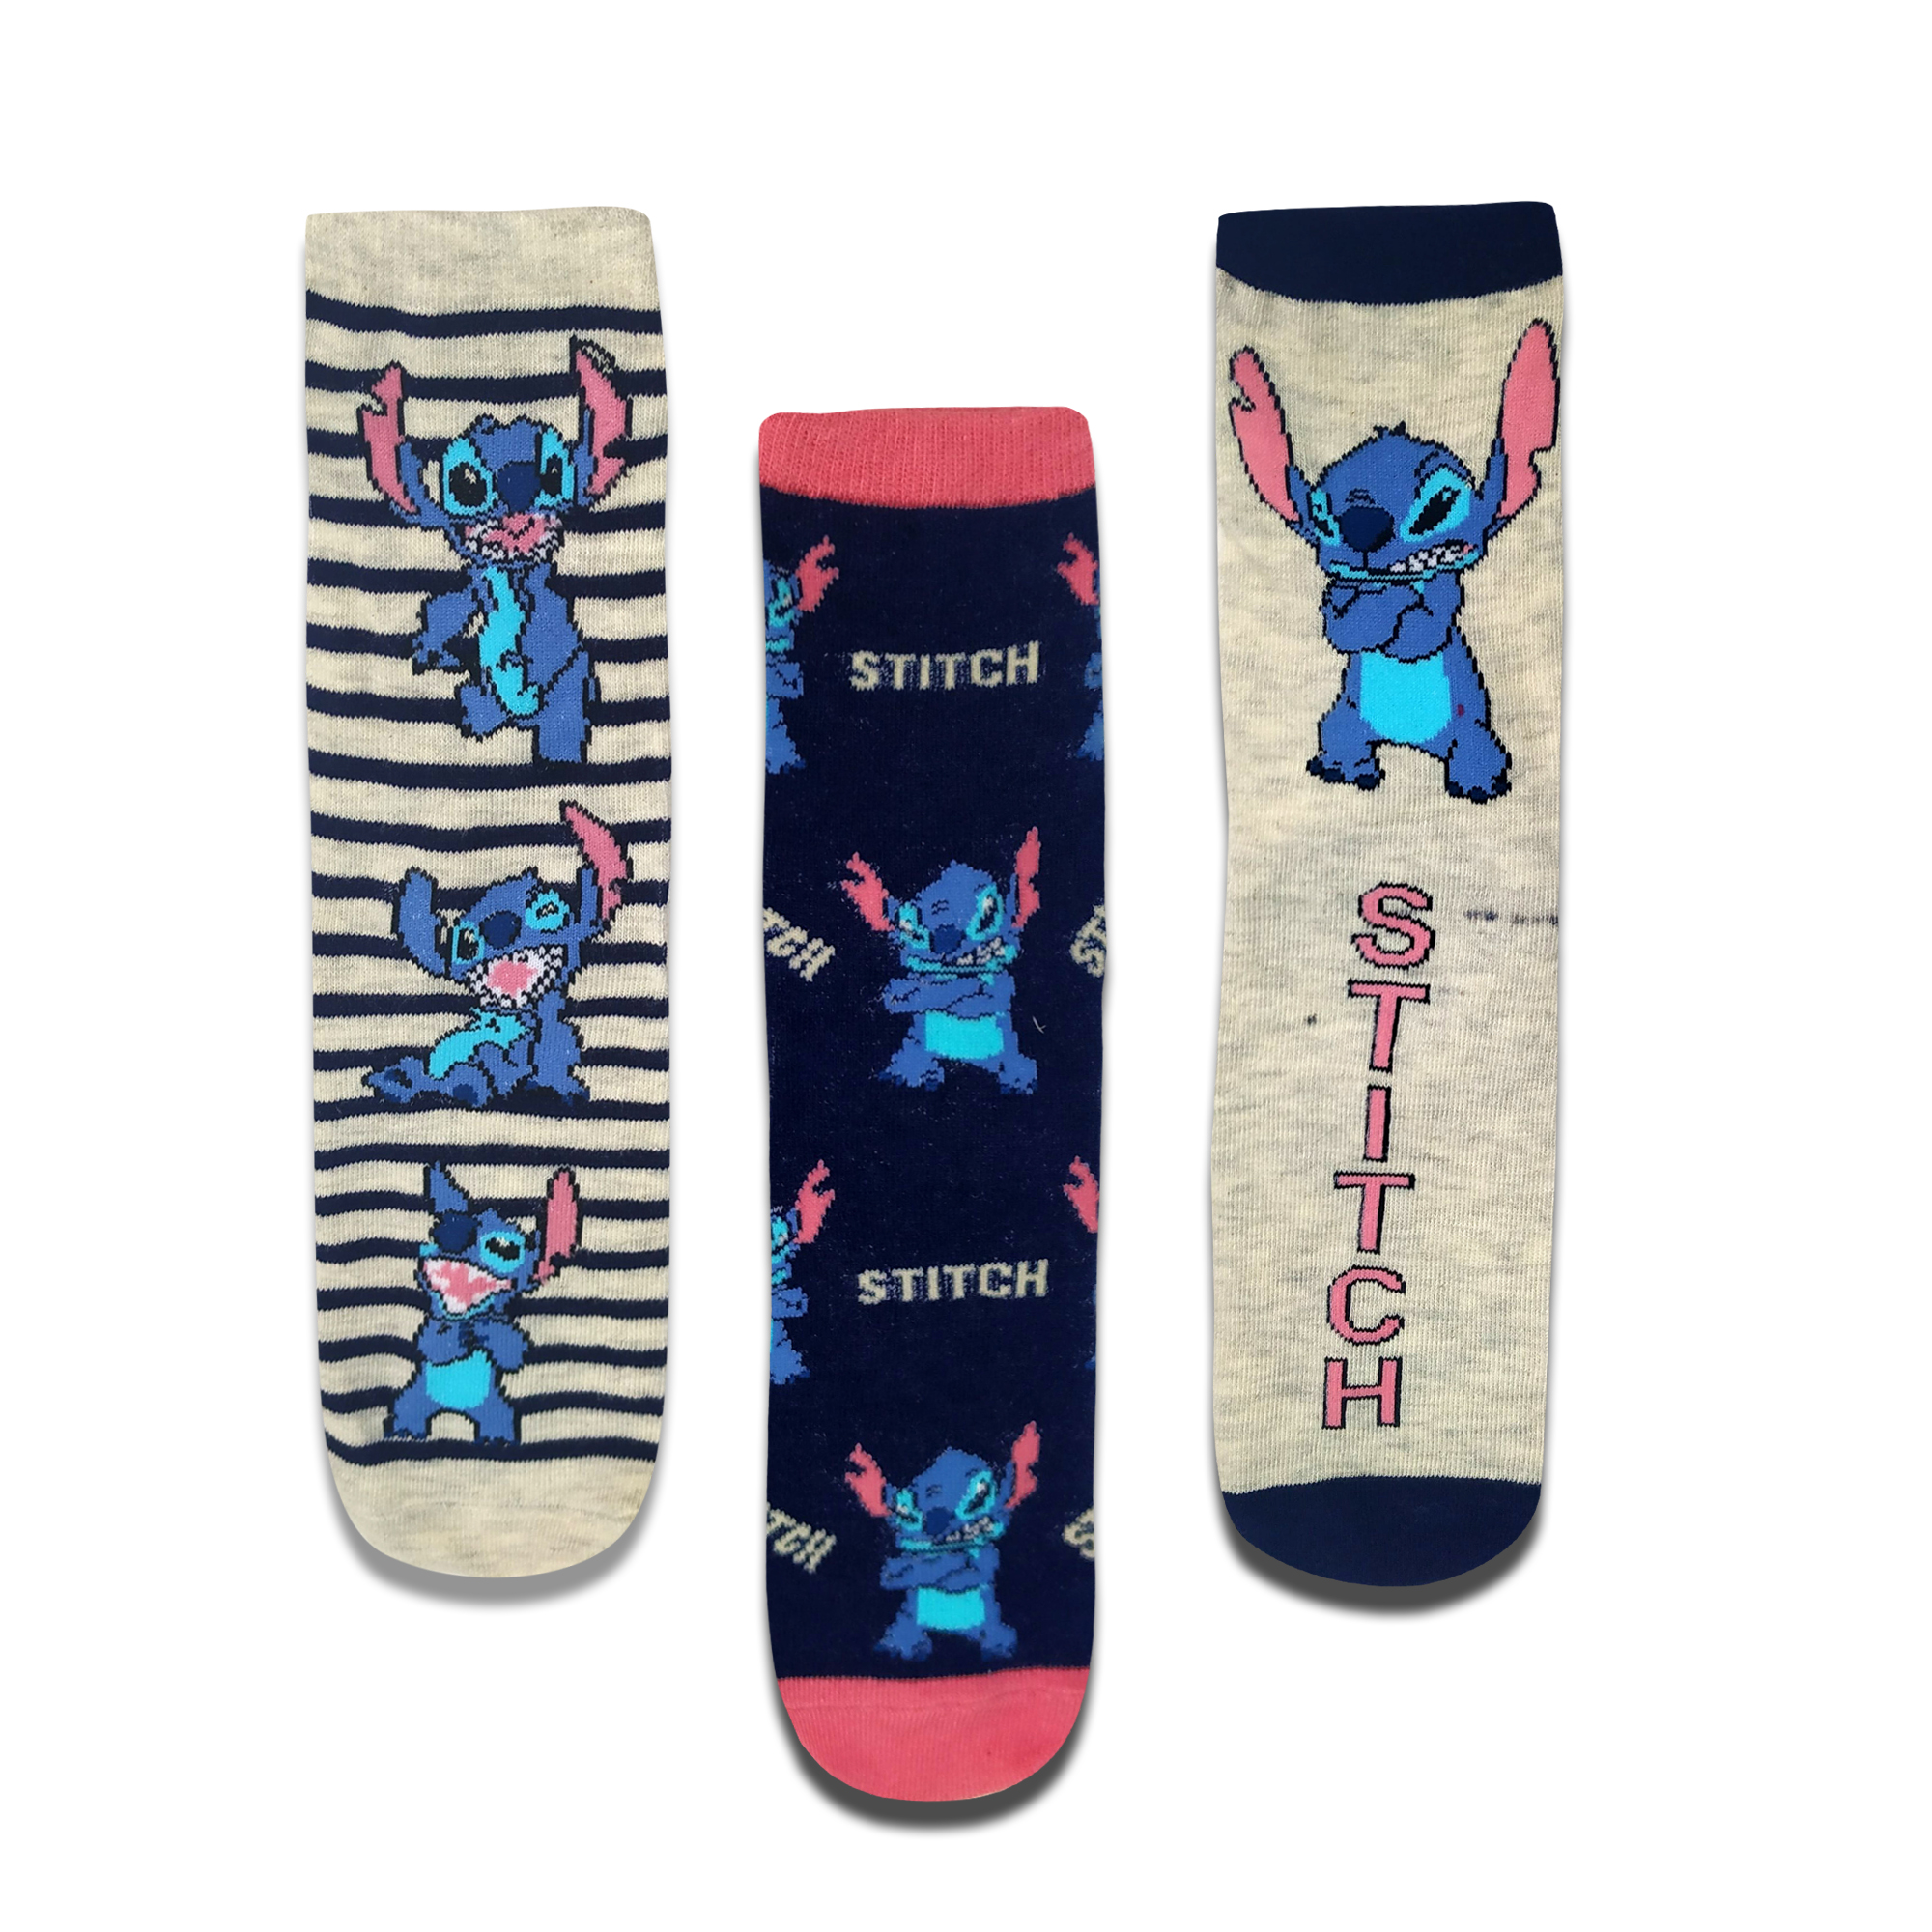 Cartoon Character Mens Fashion Crew Socks Kawaii Stitch Pattern Happy Colorful Socks Personality Funny Anime Socks